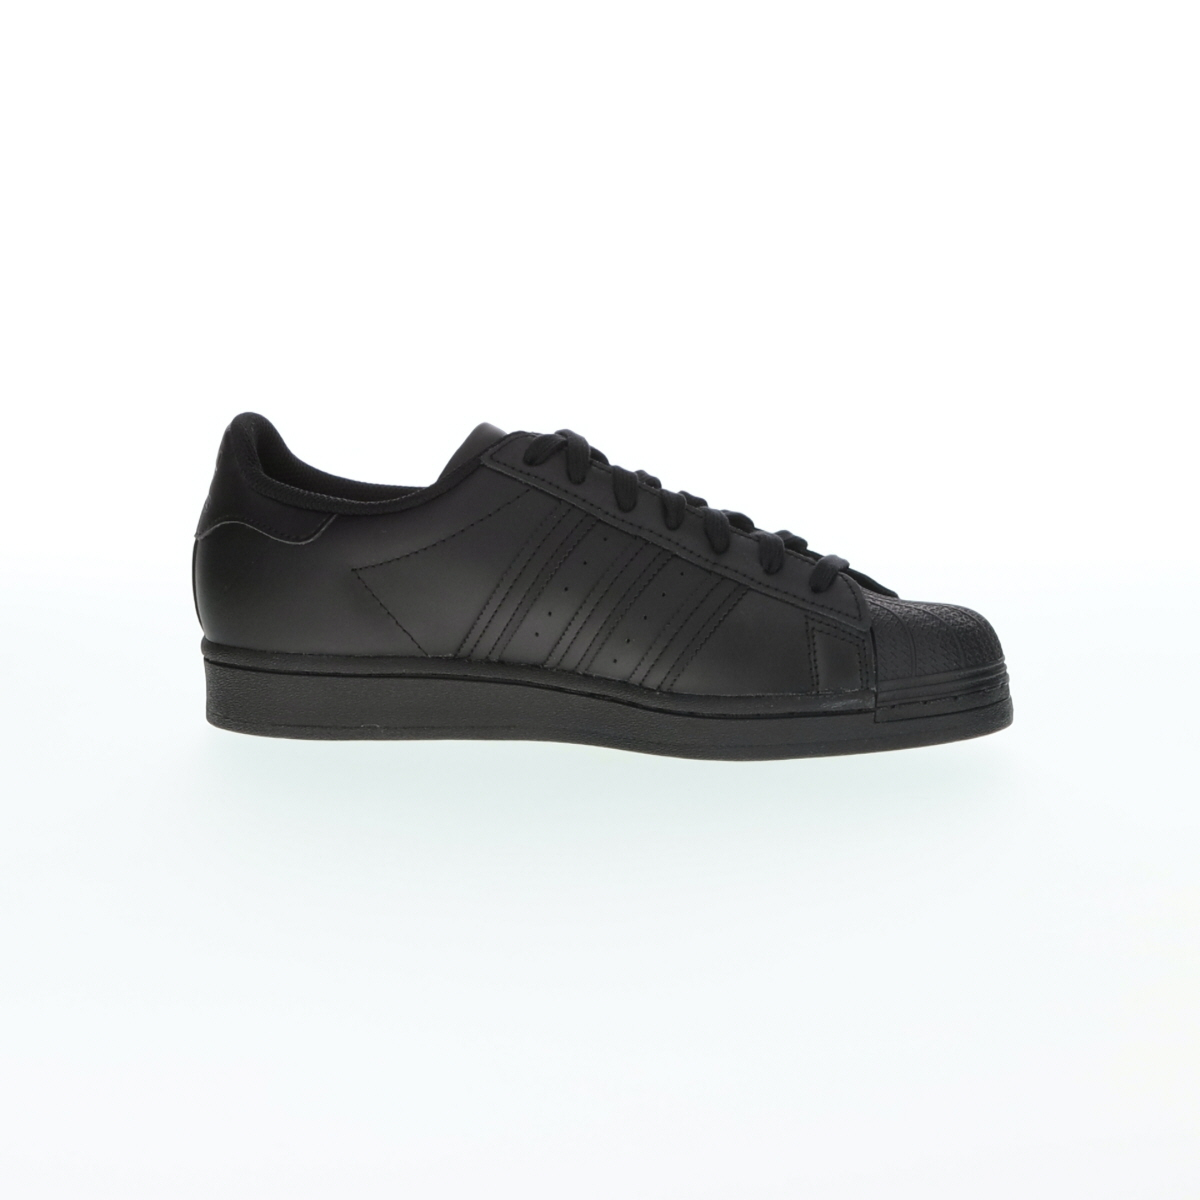 adidas originals jeans grey boots made for women